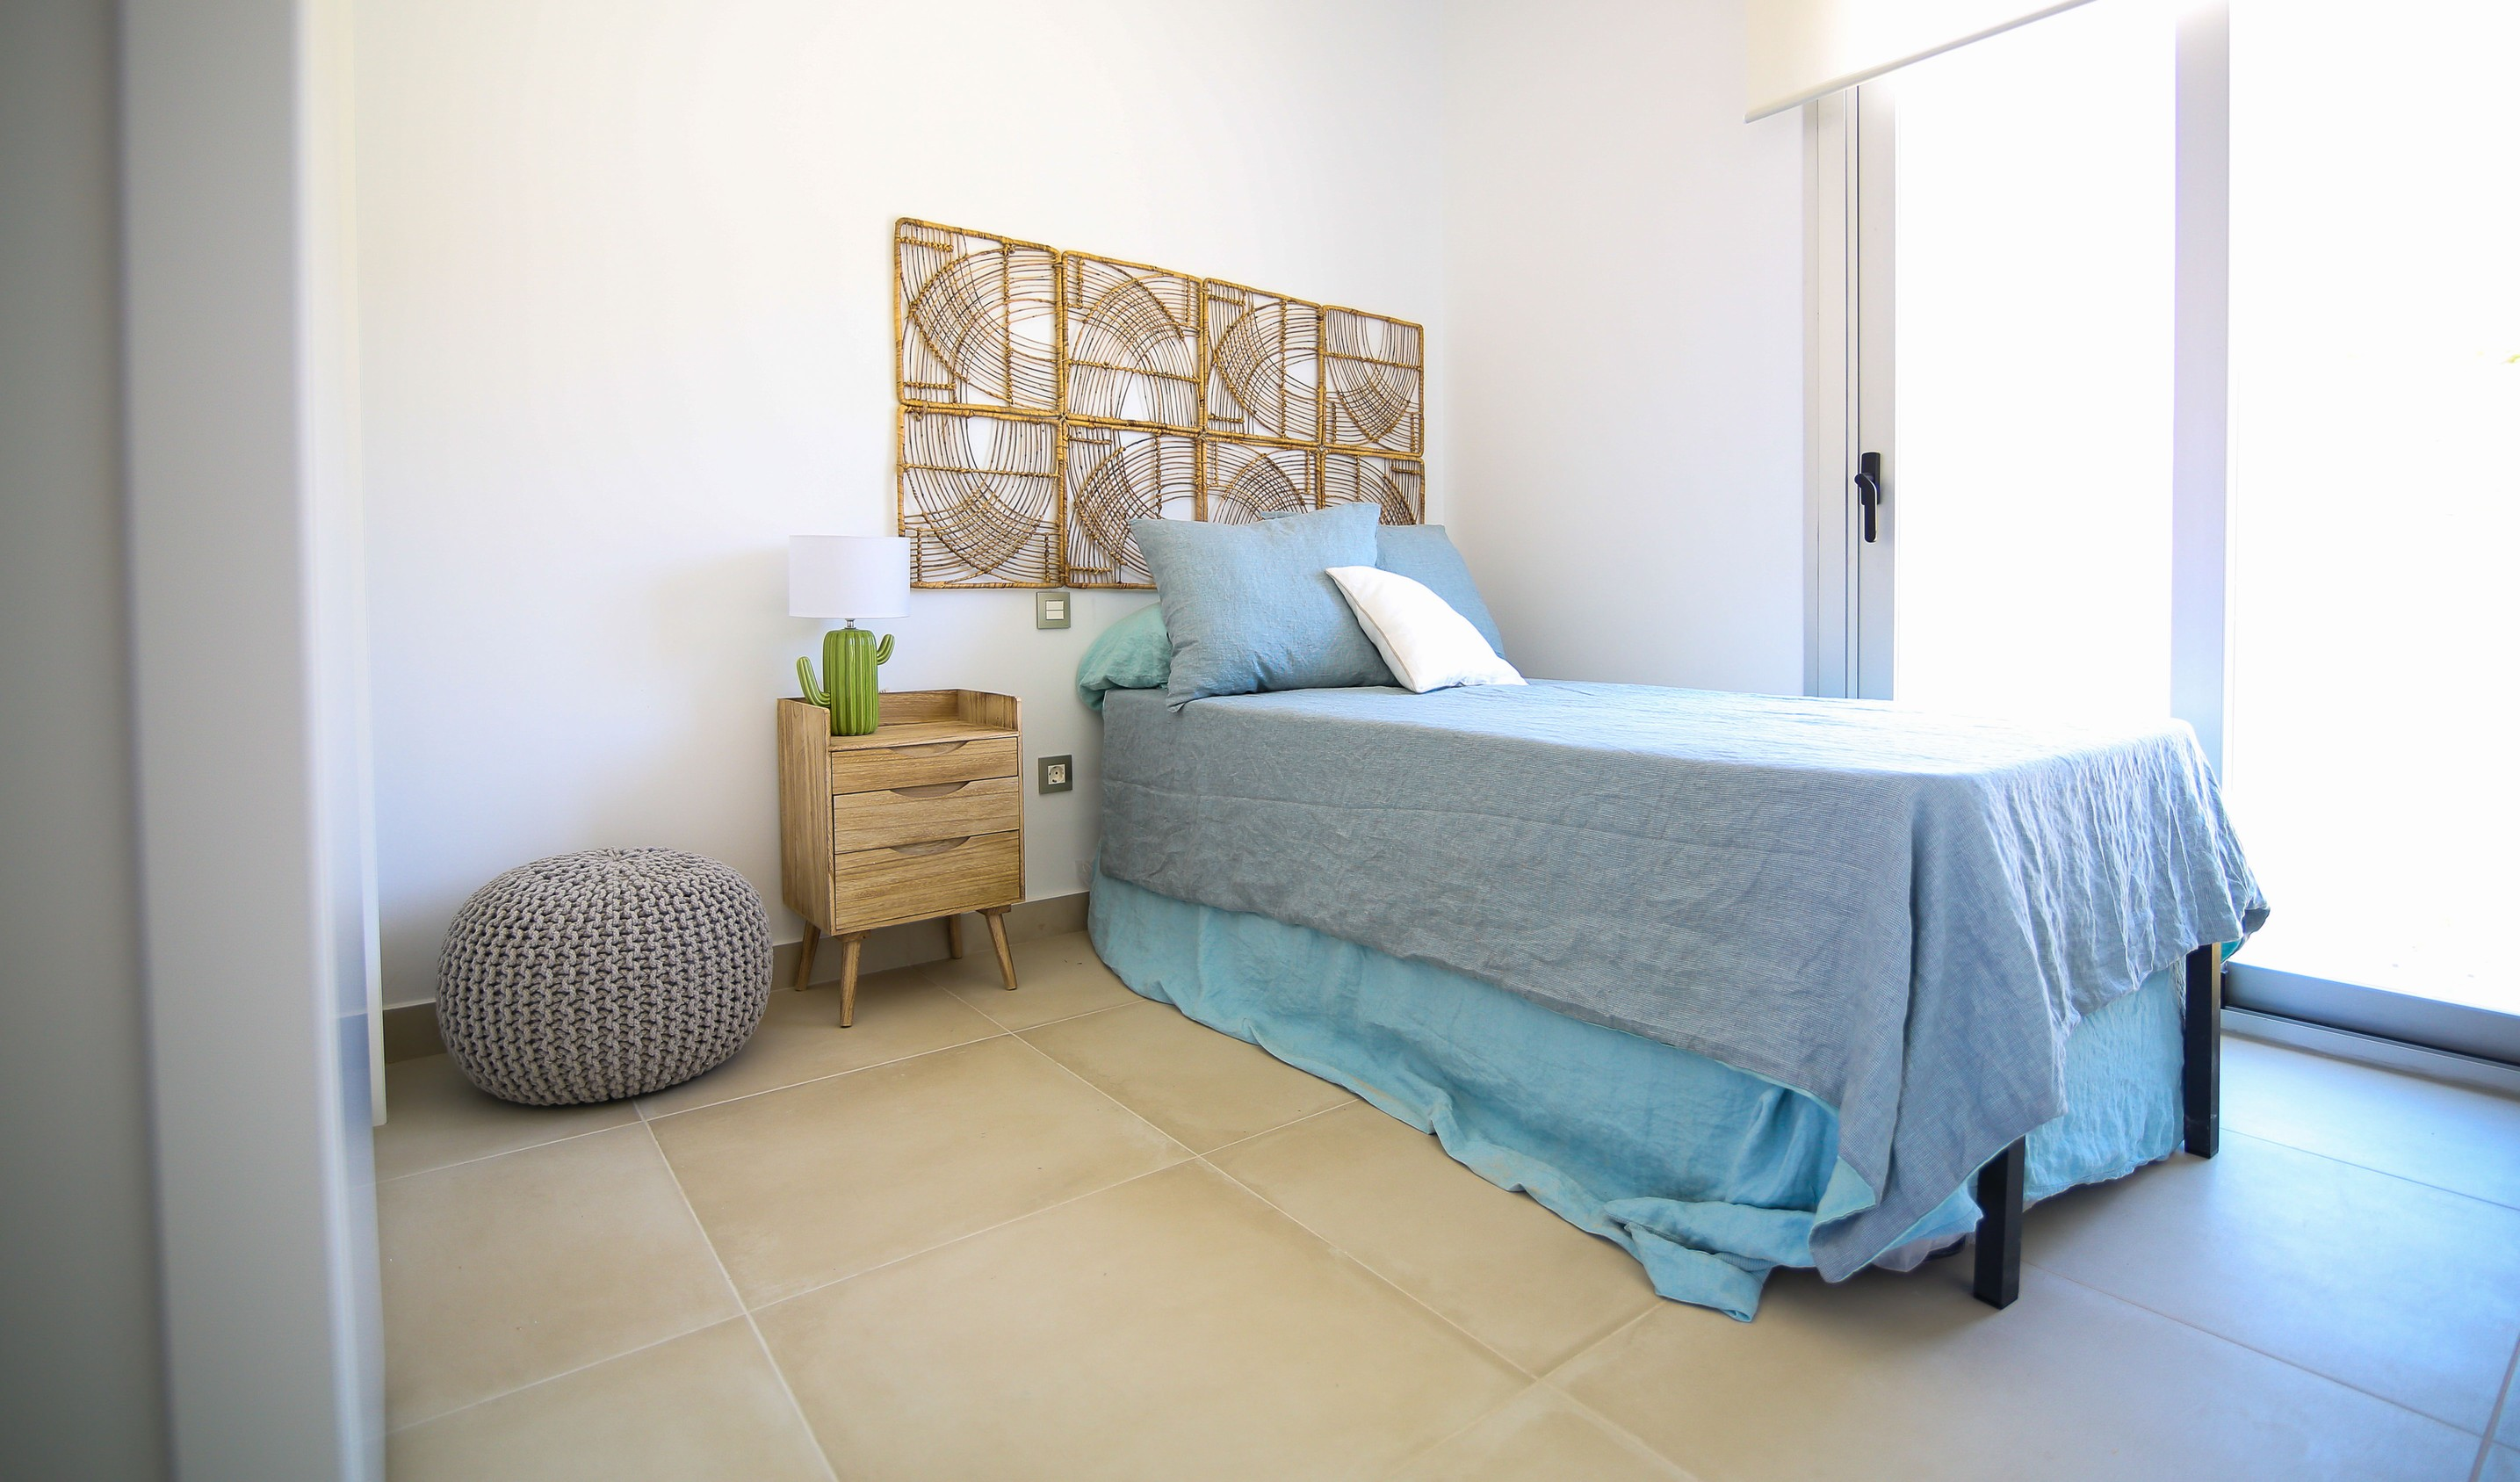 2 bedroom apartment For Sale in Finestrat - photograph 14